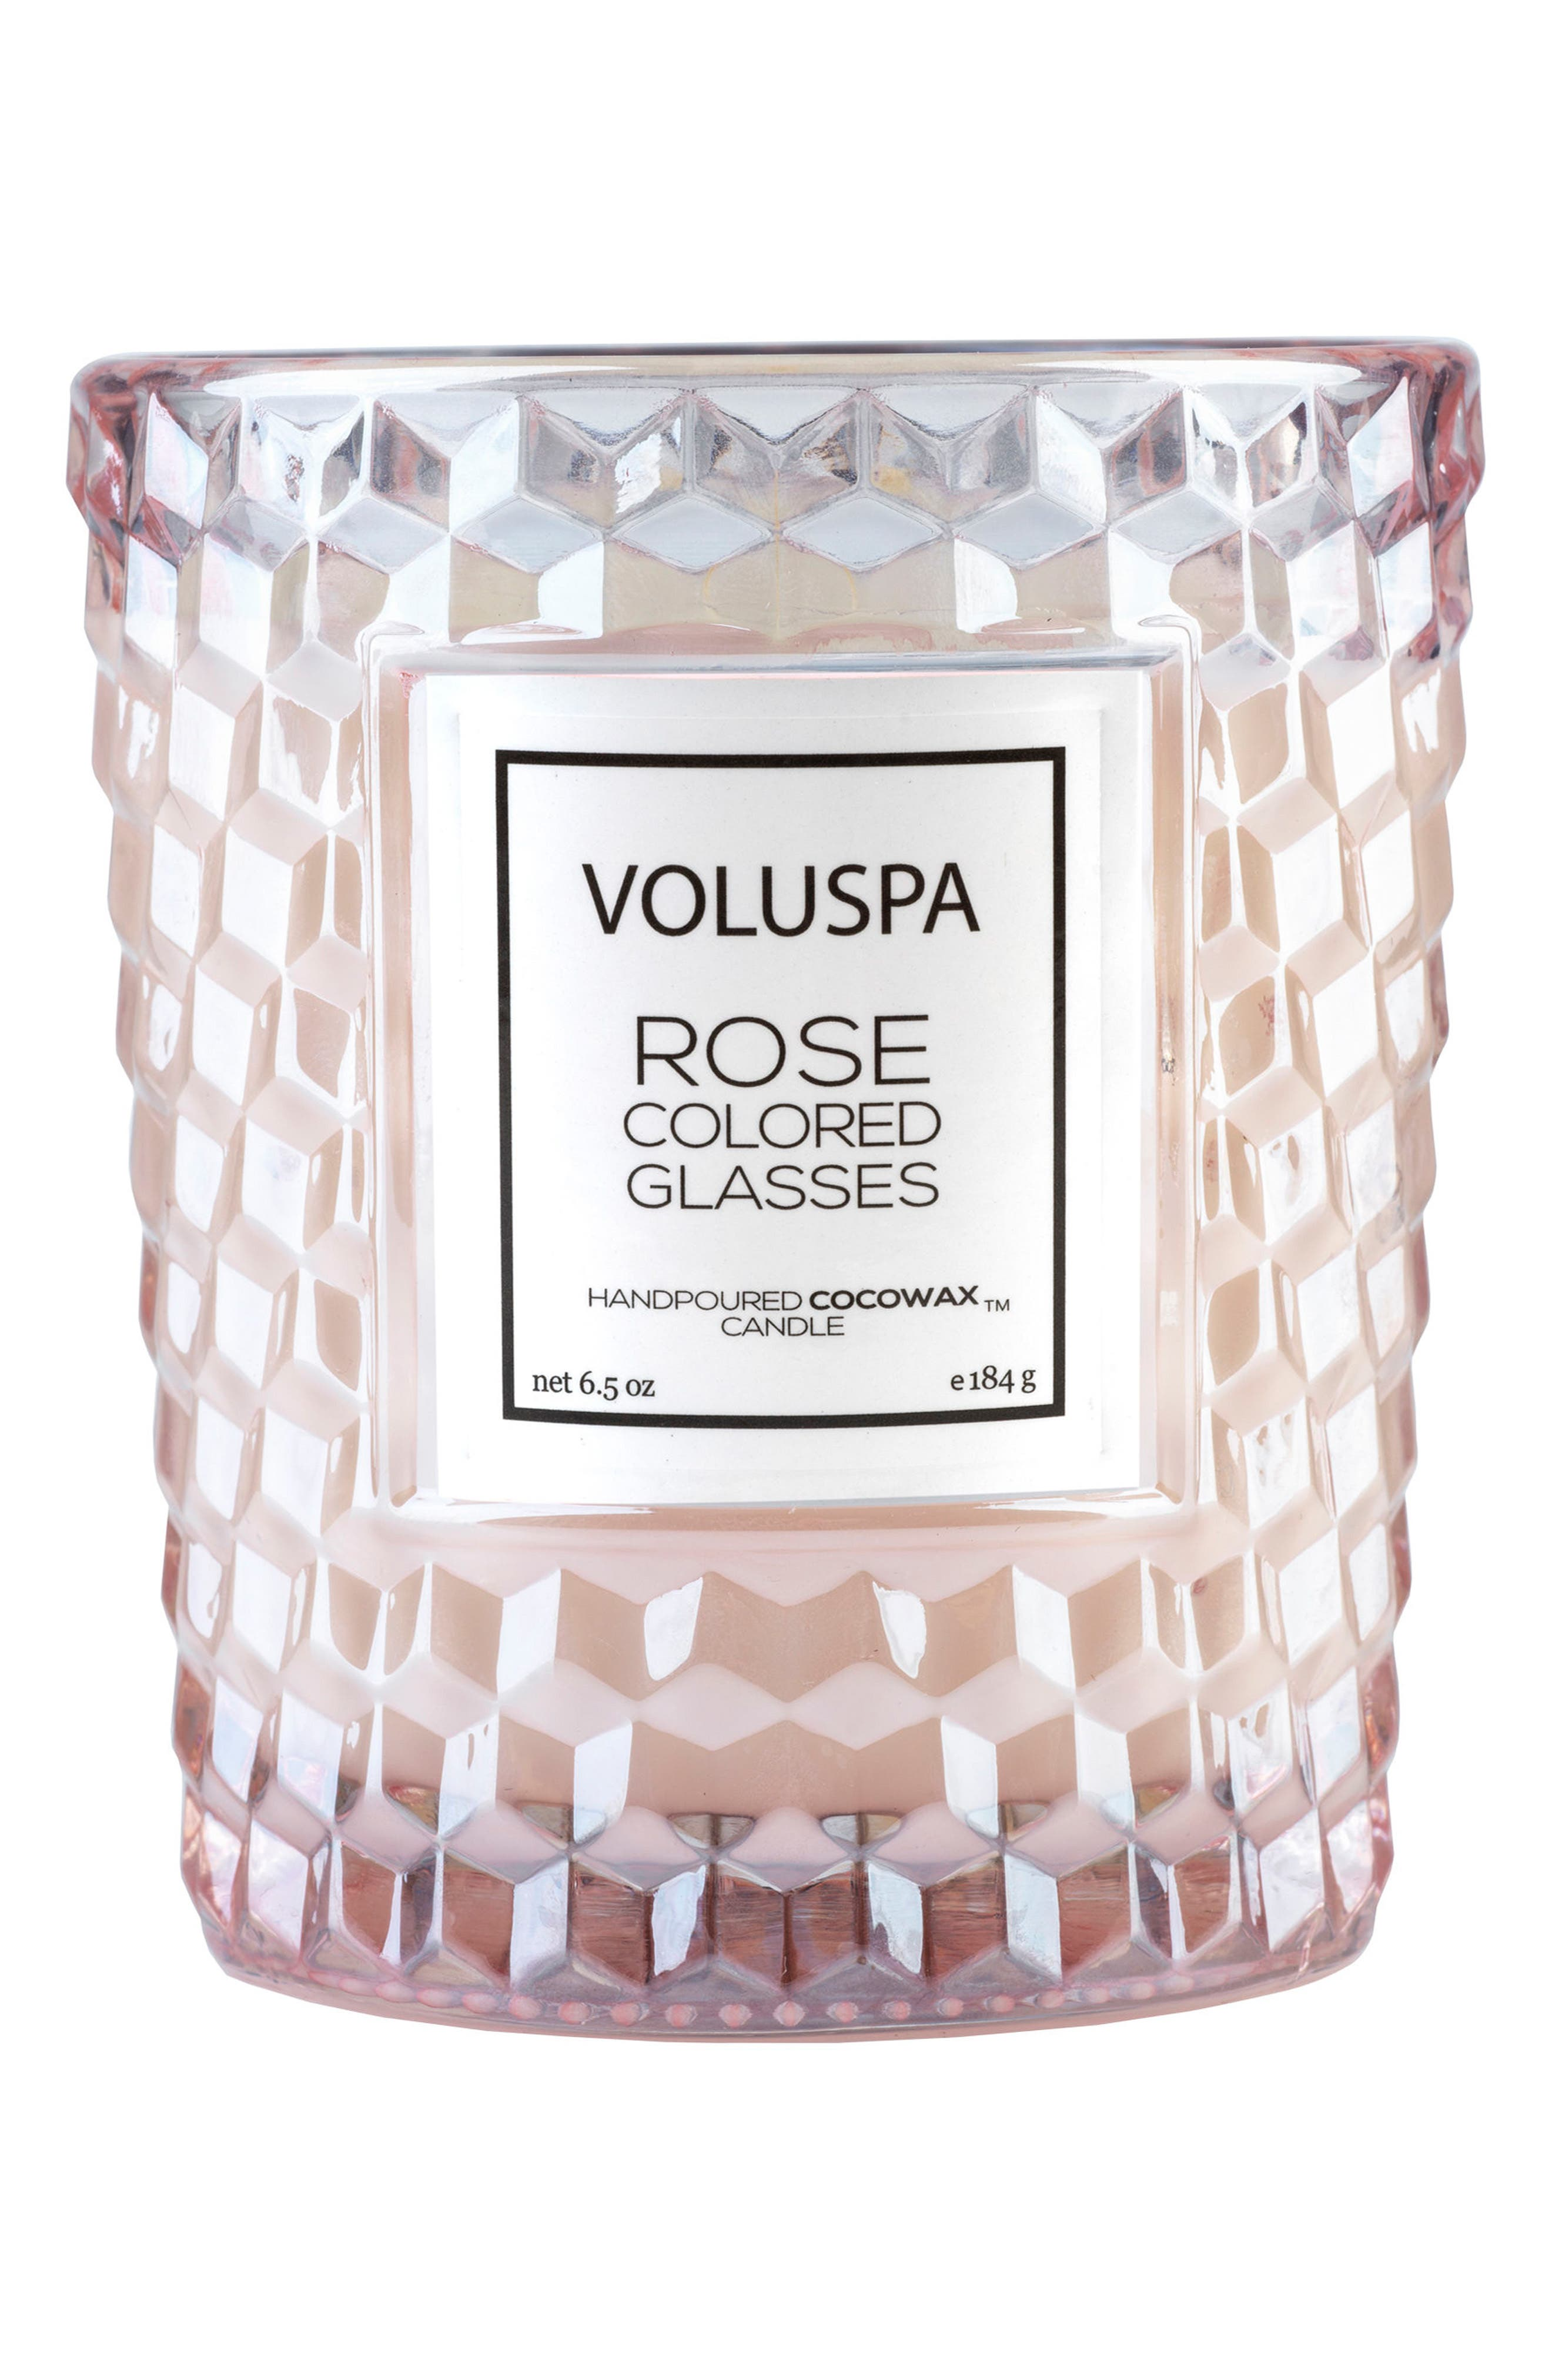 Roses Classic Textured Glass Candle,                         Main,                         color, Rose Colored Glasses